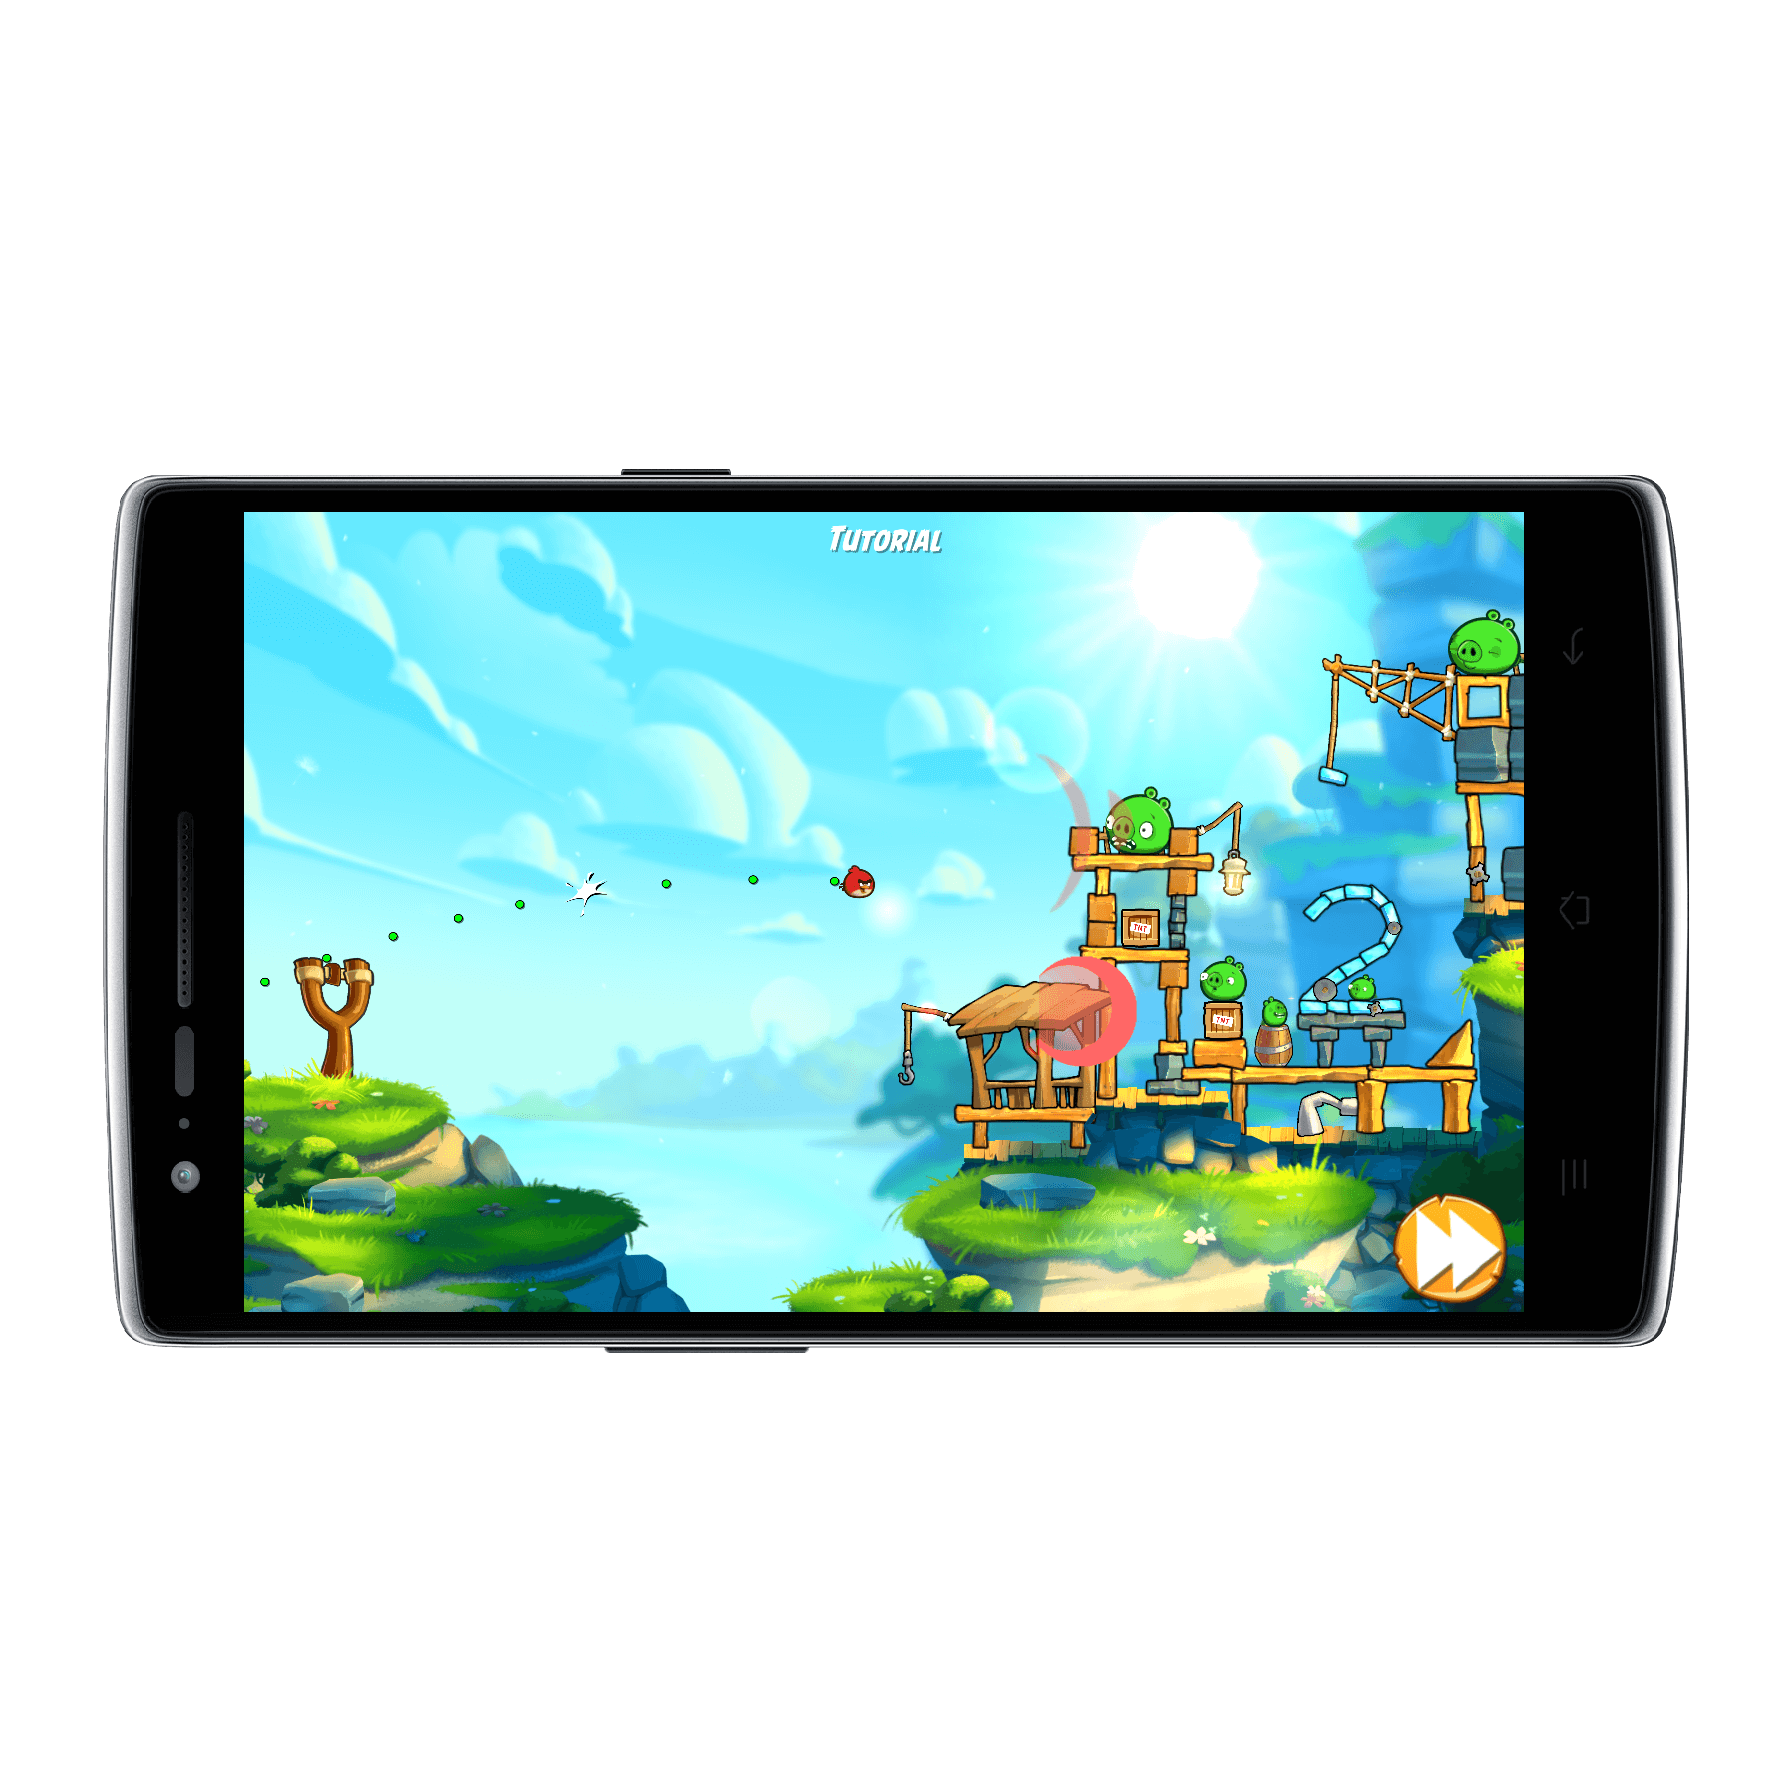 Angry Birds on Android - HTC Flyer Tablet - YouTube